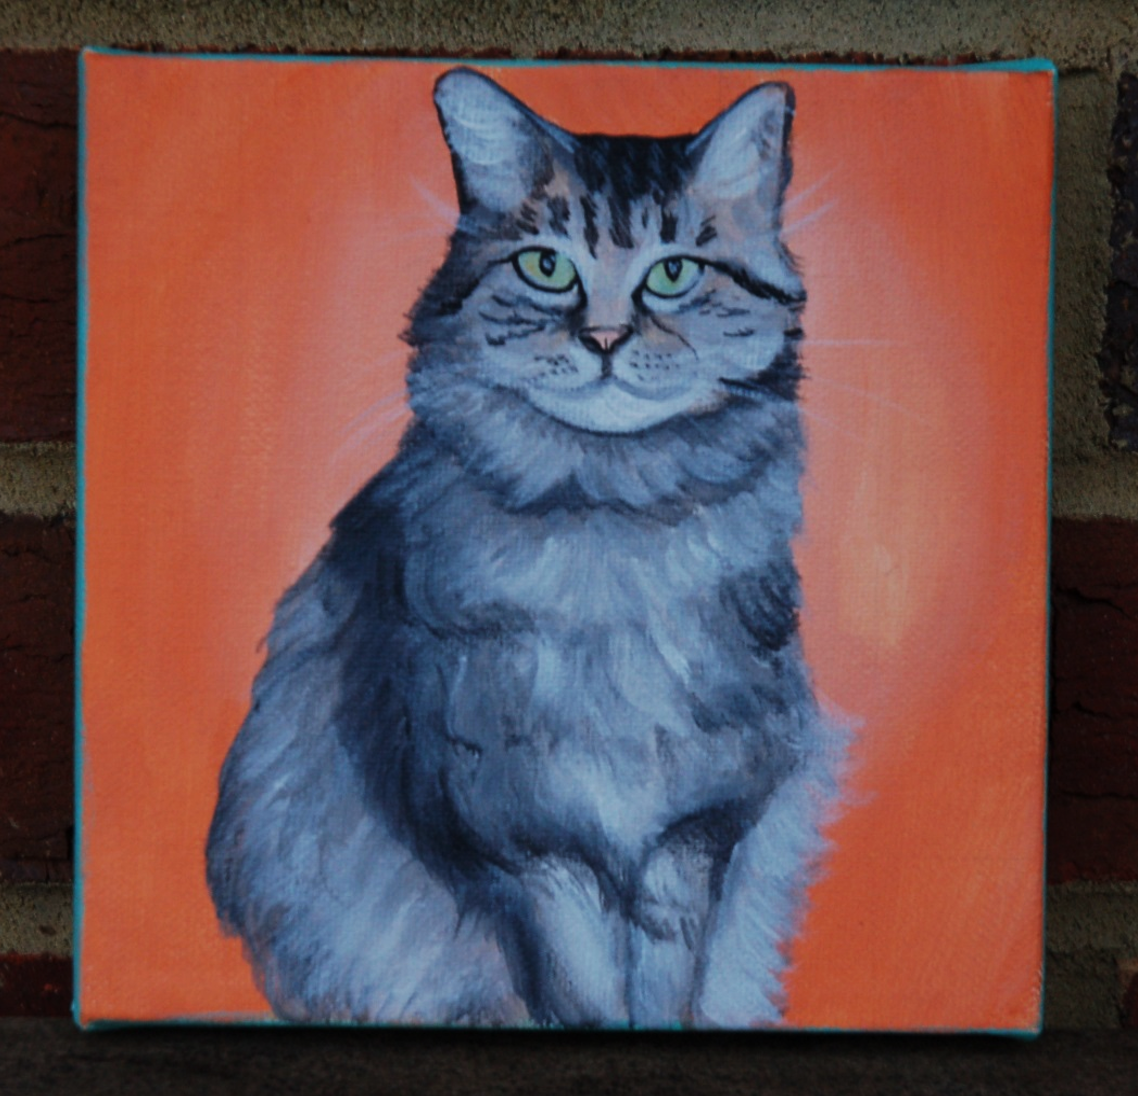 beautiful kitty cat portrait painting on canvas